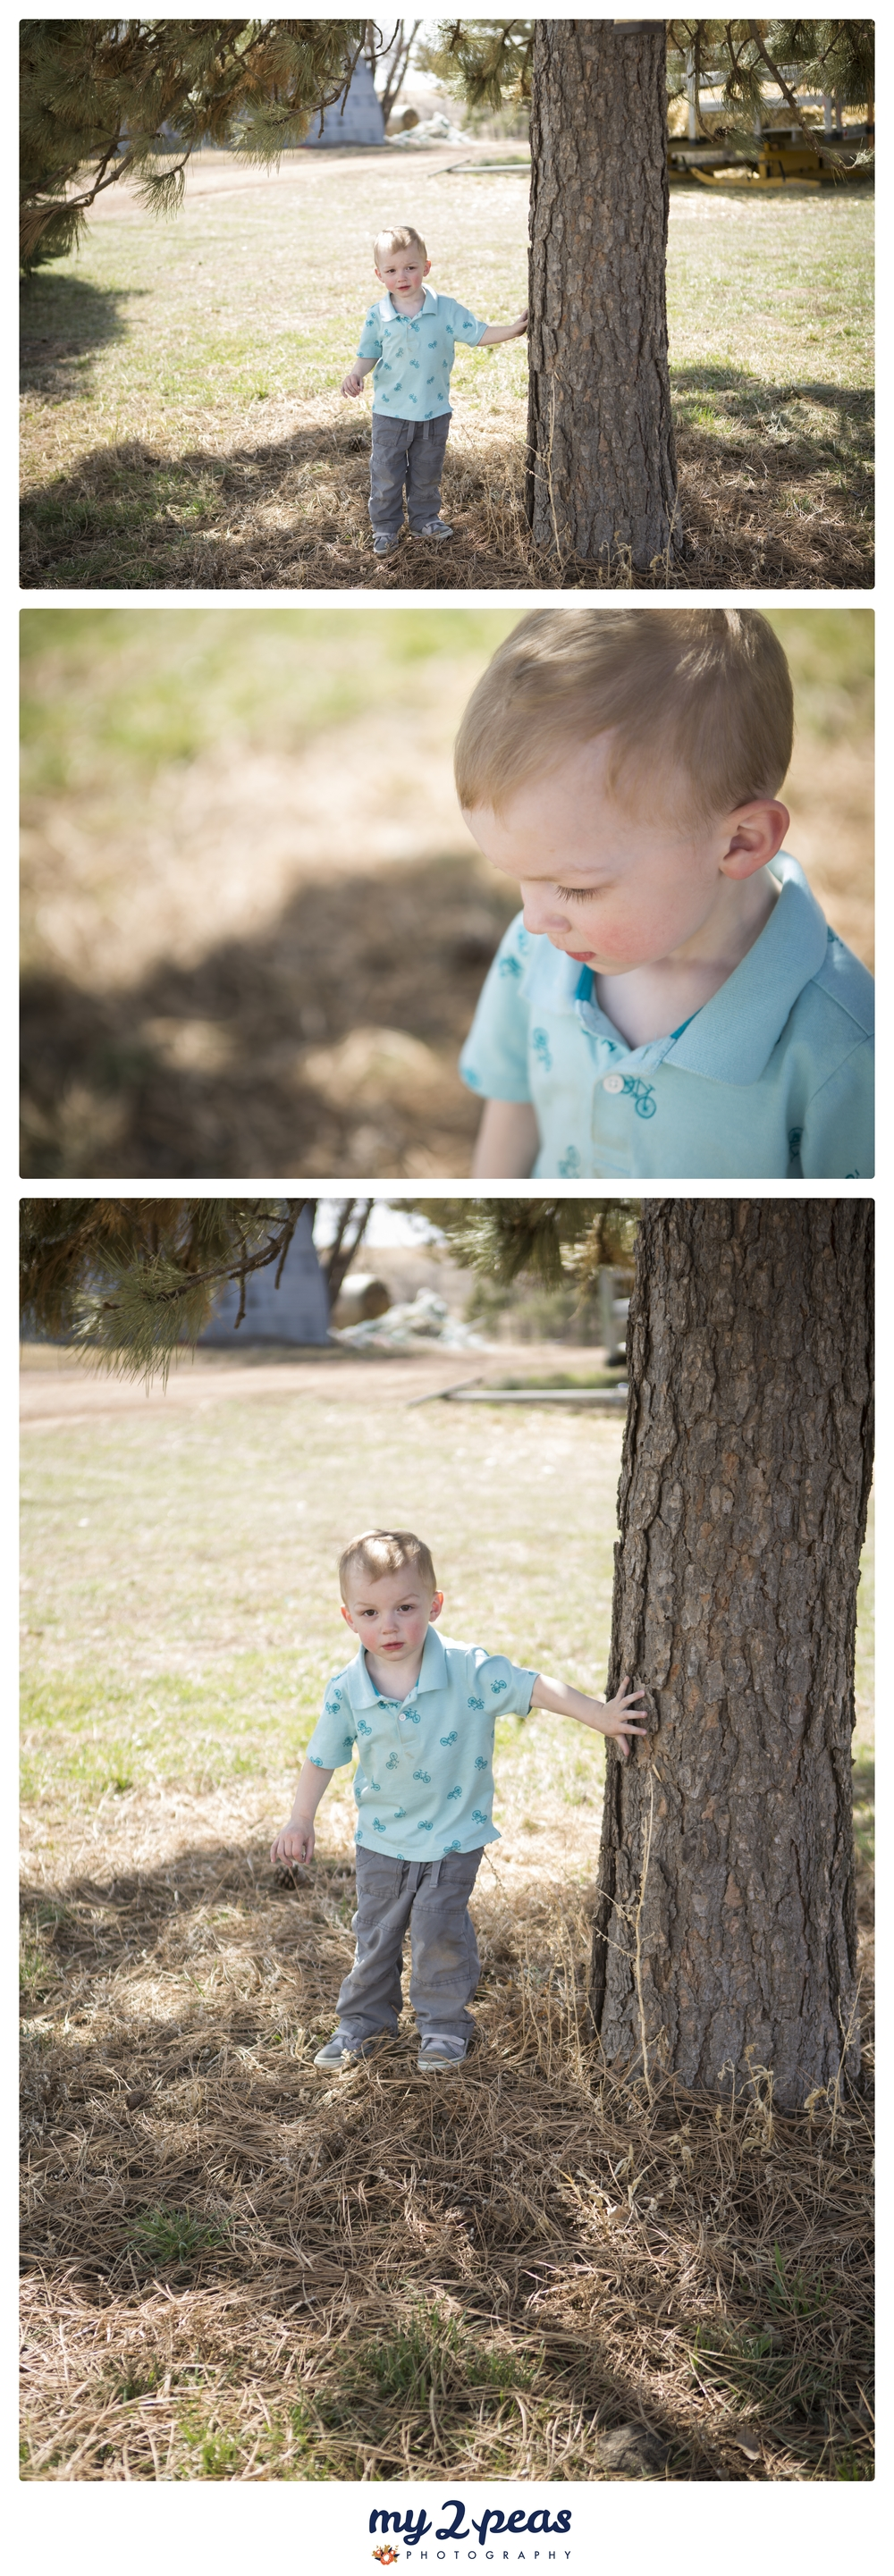 My Nephew Noah just turned TWO!! Isn't he adorable?!? I miss him and his sweet family to pieces!!